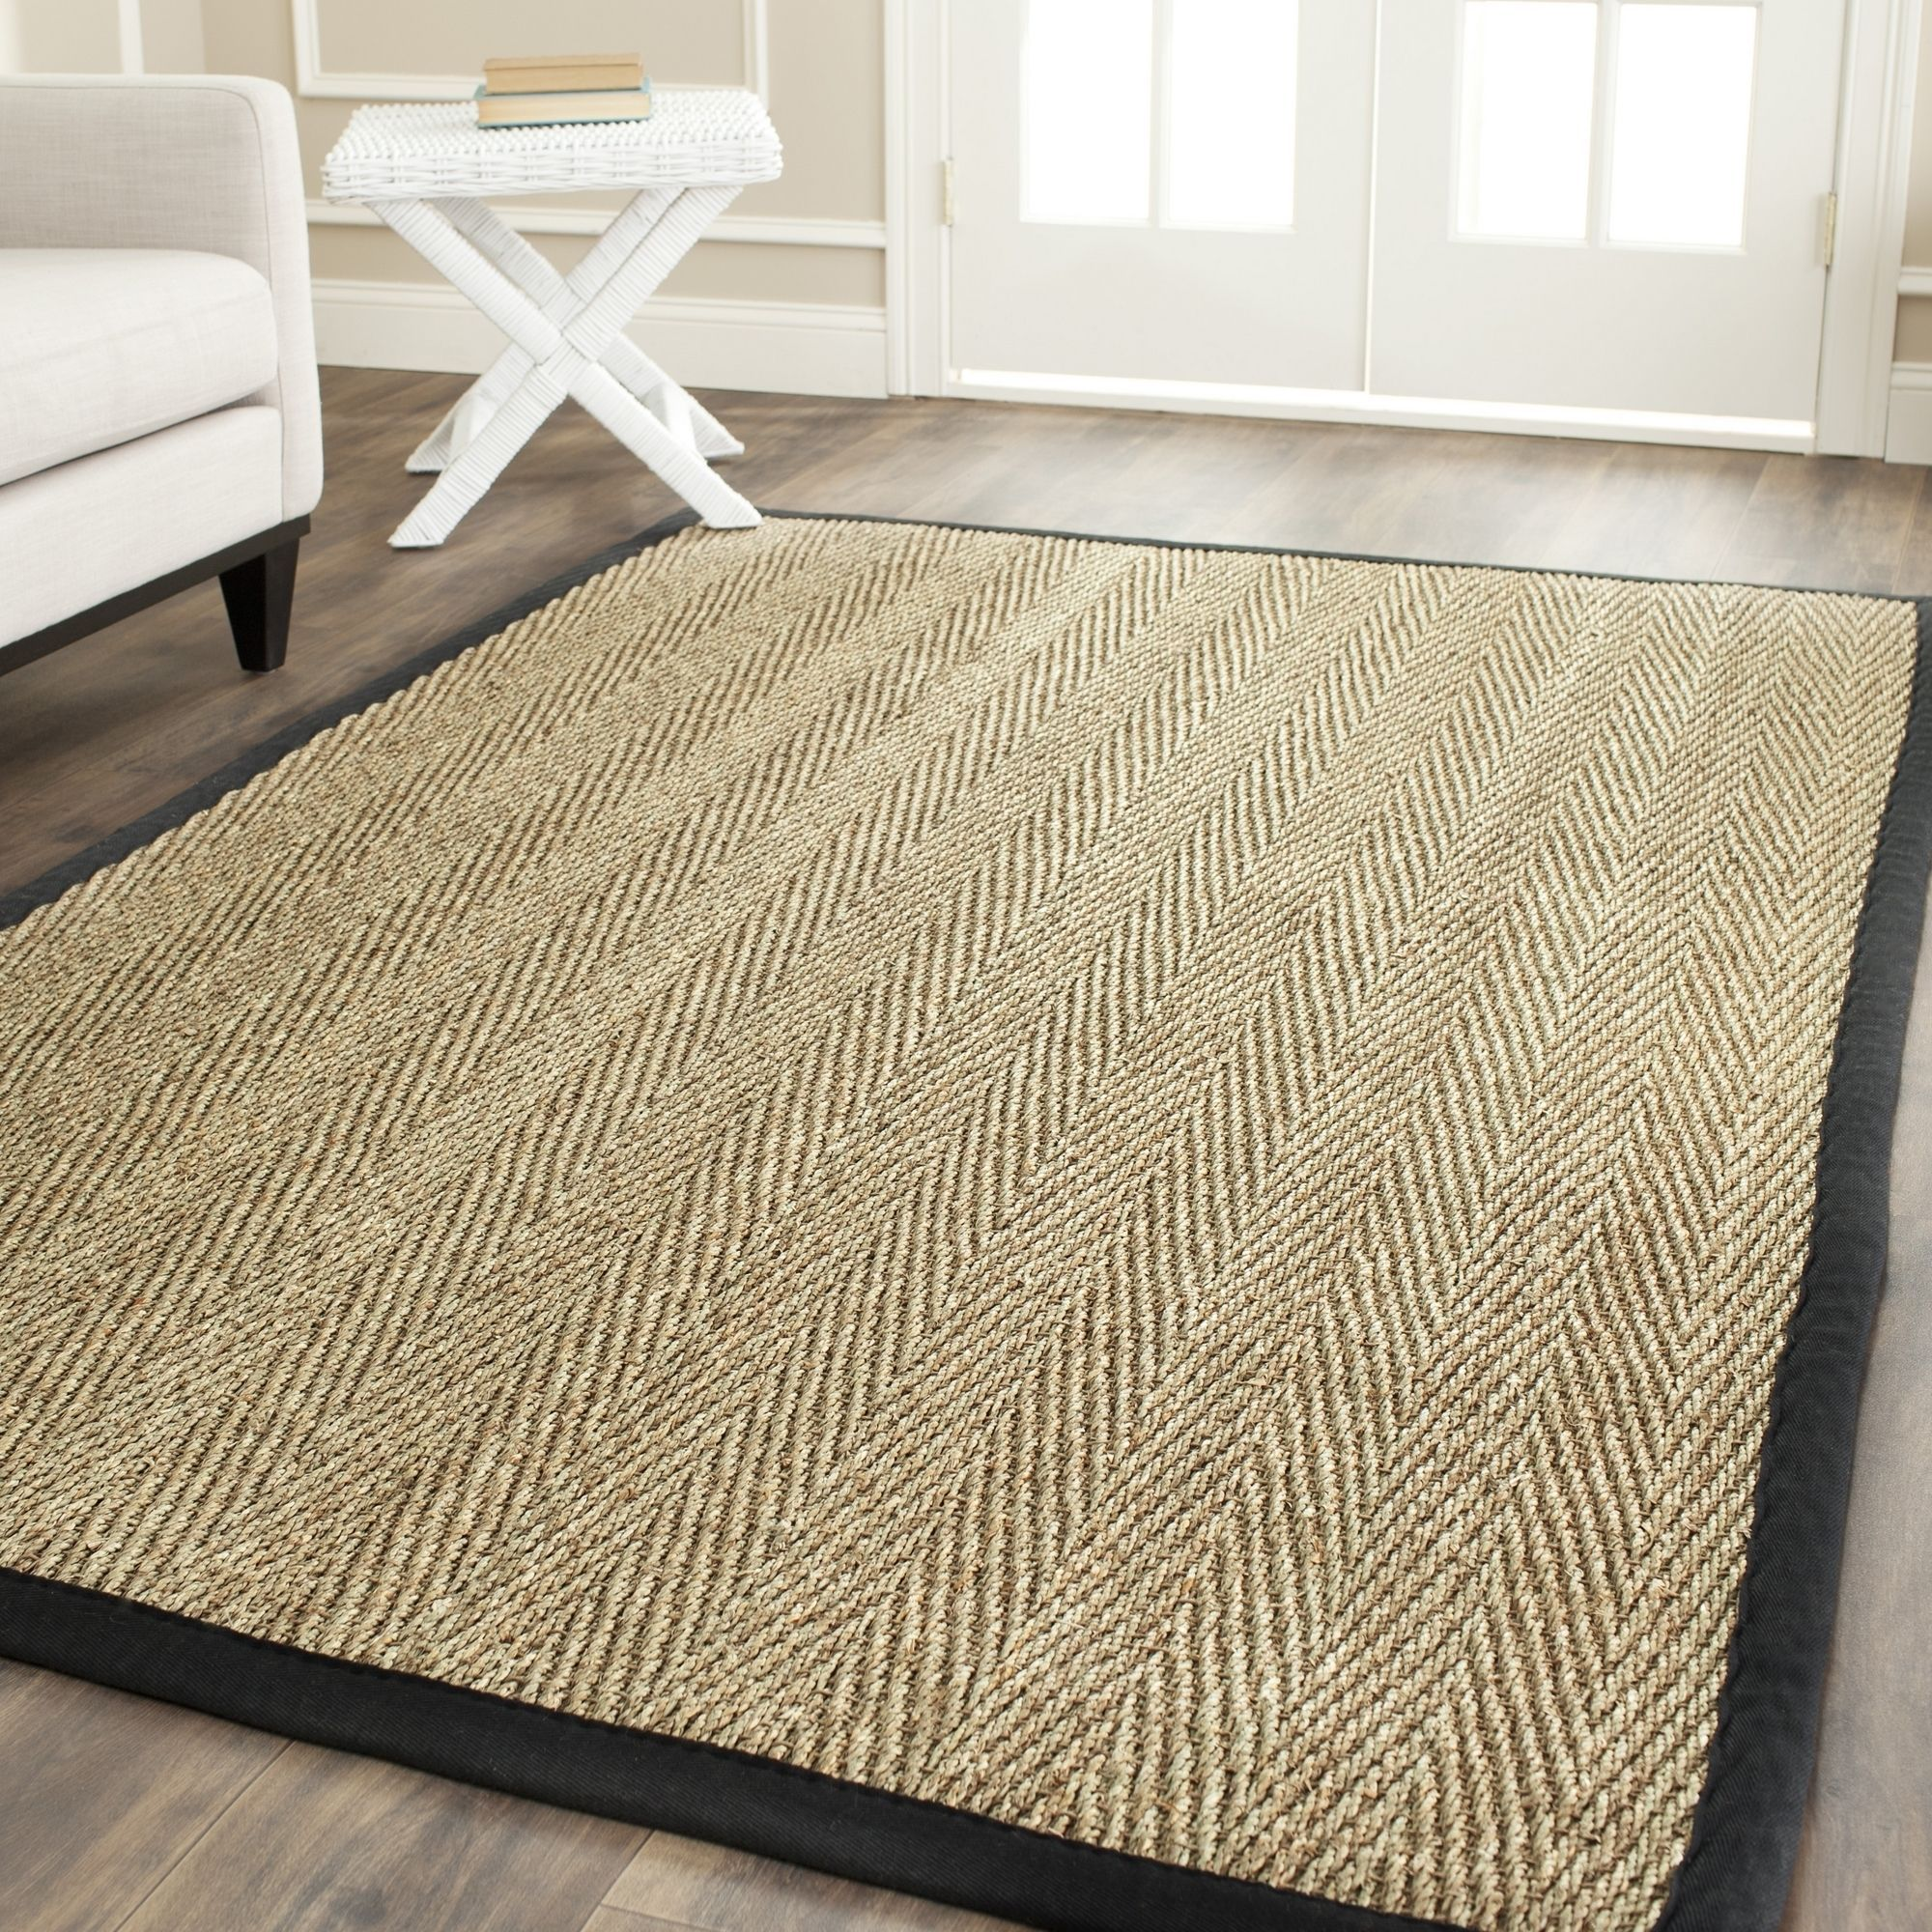 Safavieh Casual Natural Fiber Black Jute Area Rug 10 X 14 Nf115c Size